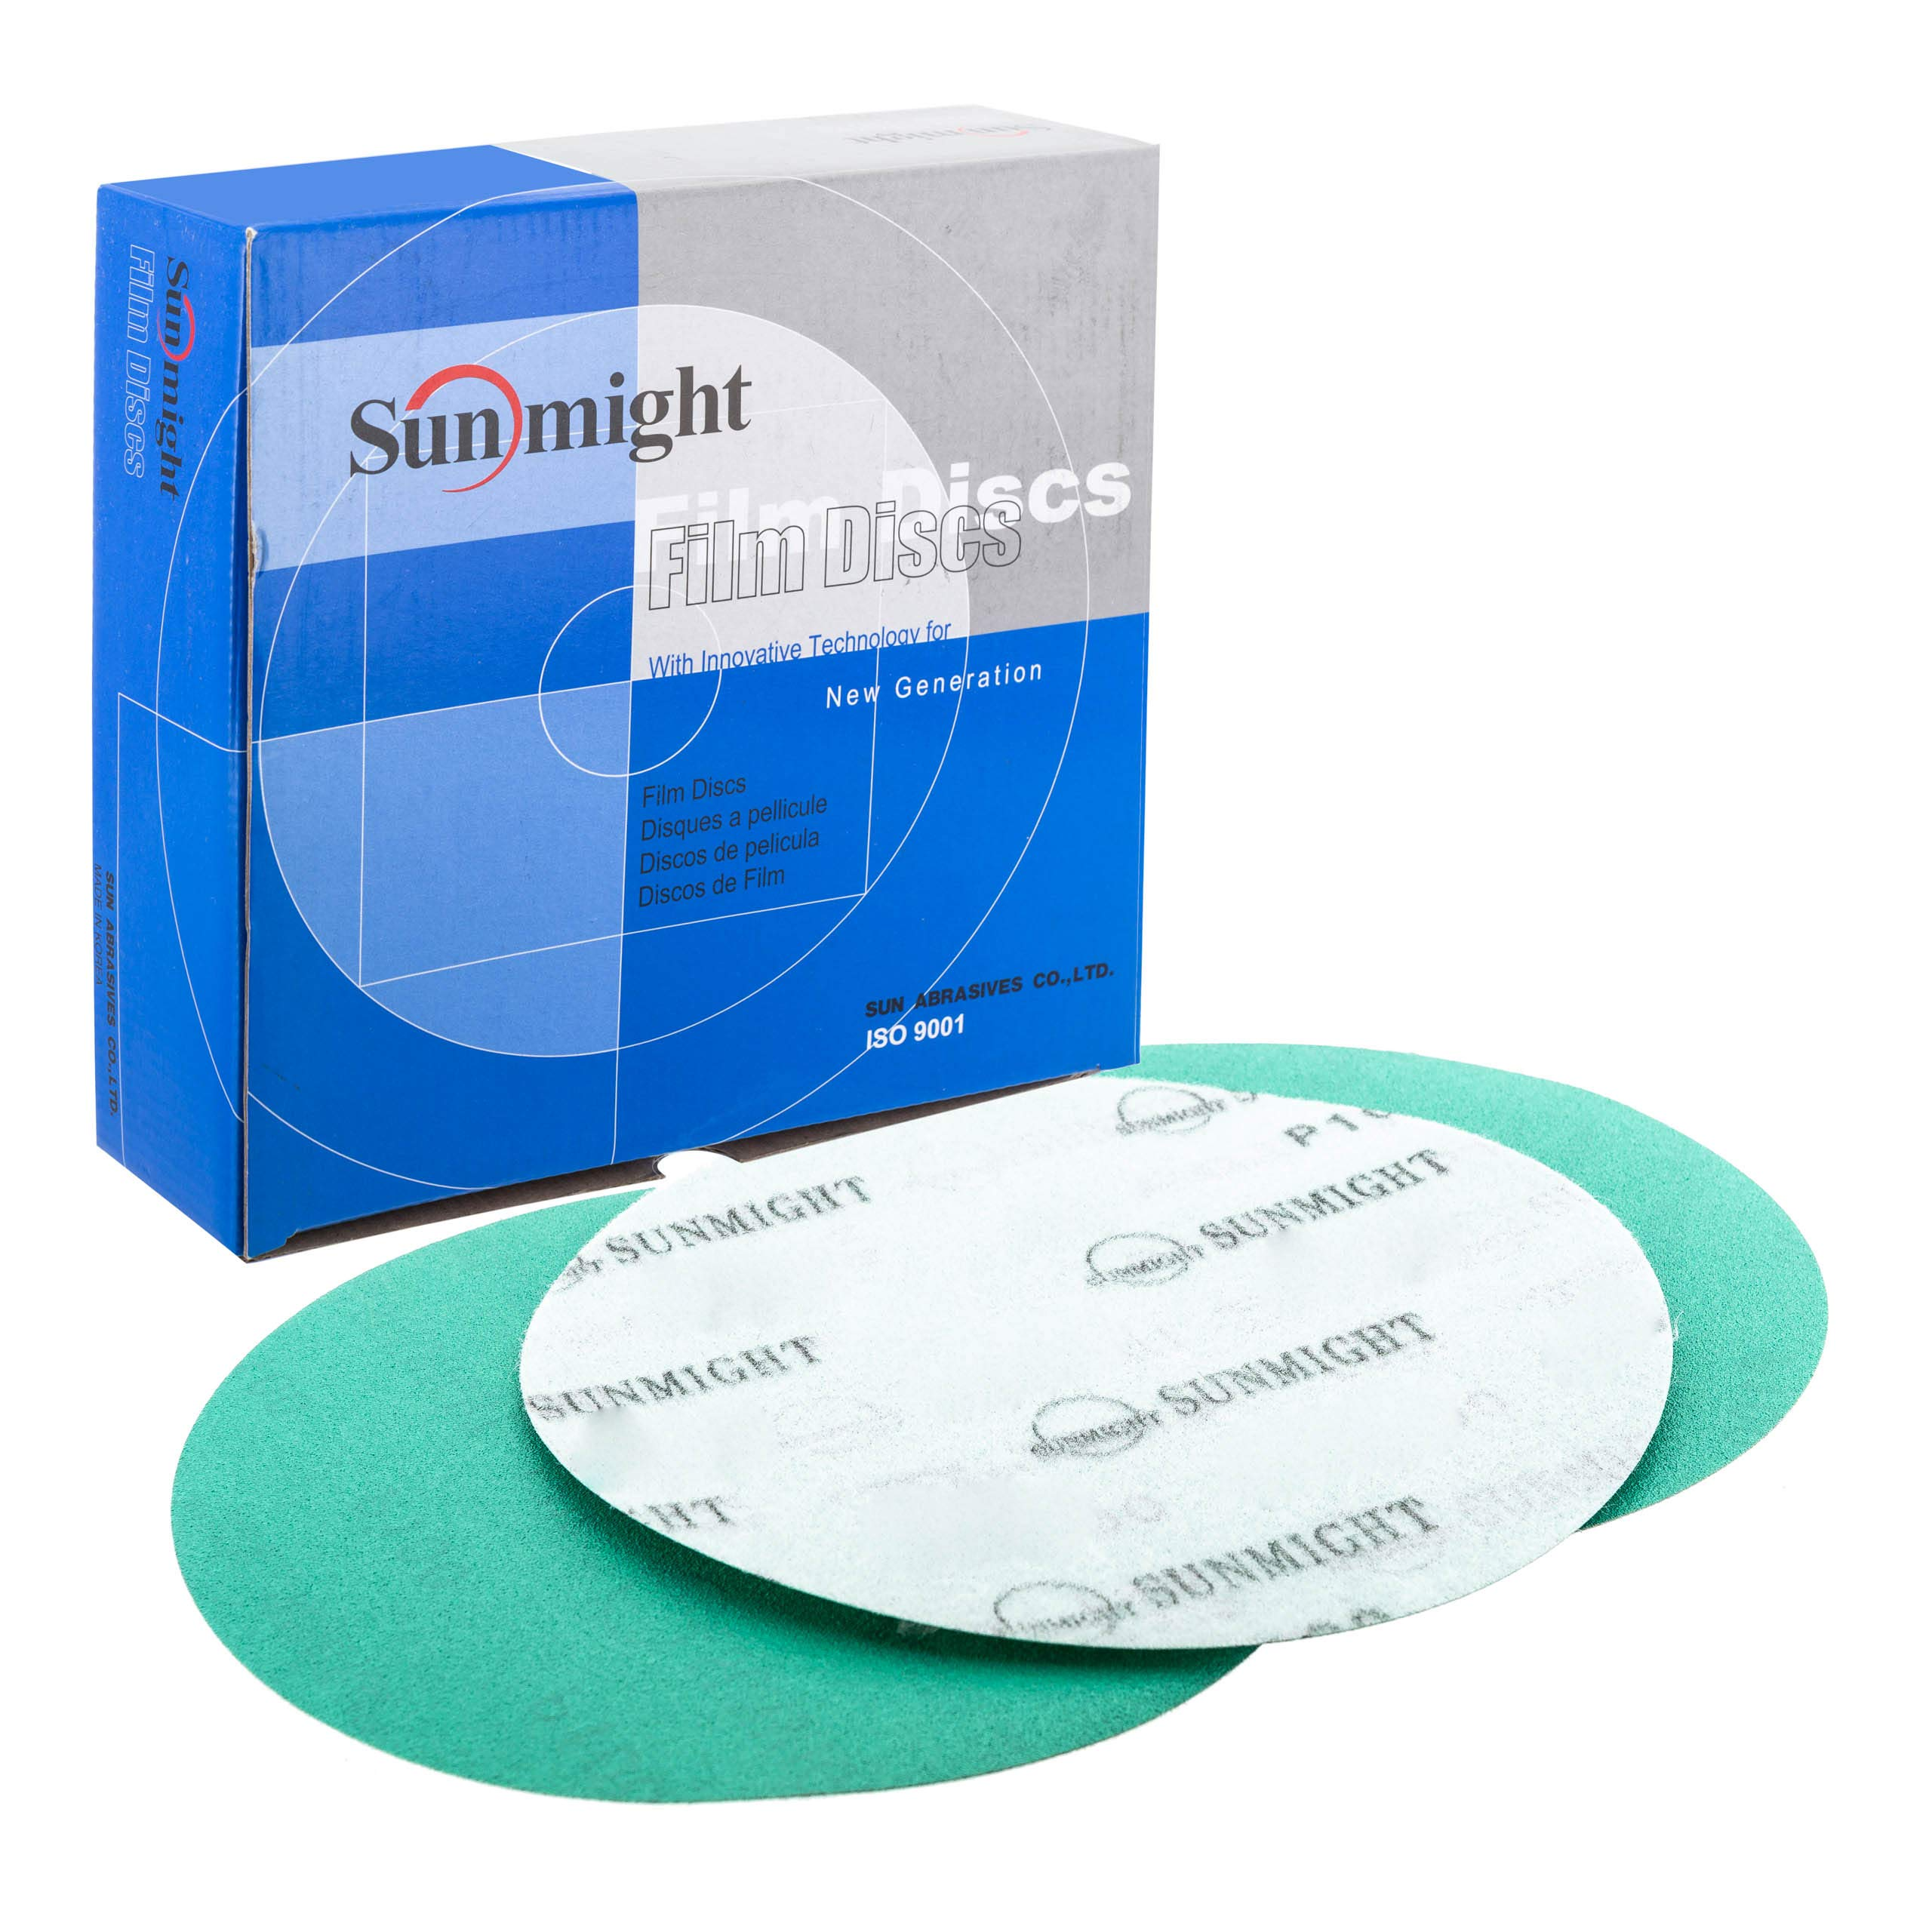 Sunmight 01602 1 Pack 8'' No Hole Velcro Disc (Film Grit 36) by Sunmight